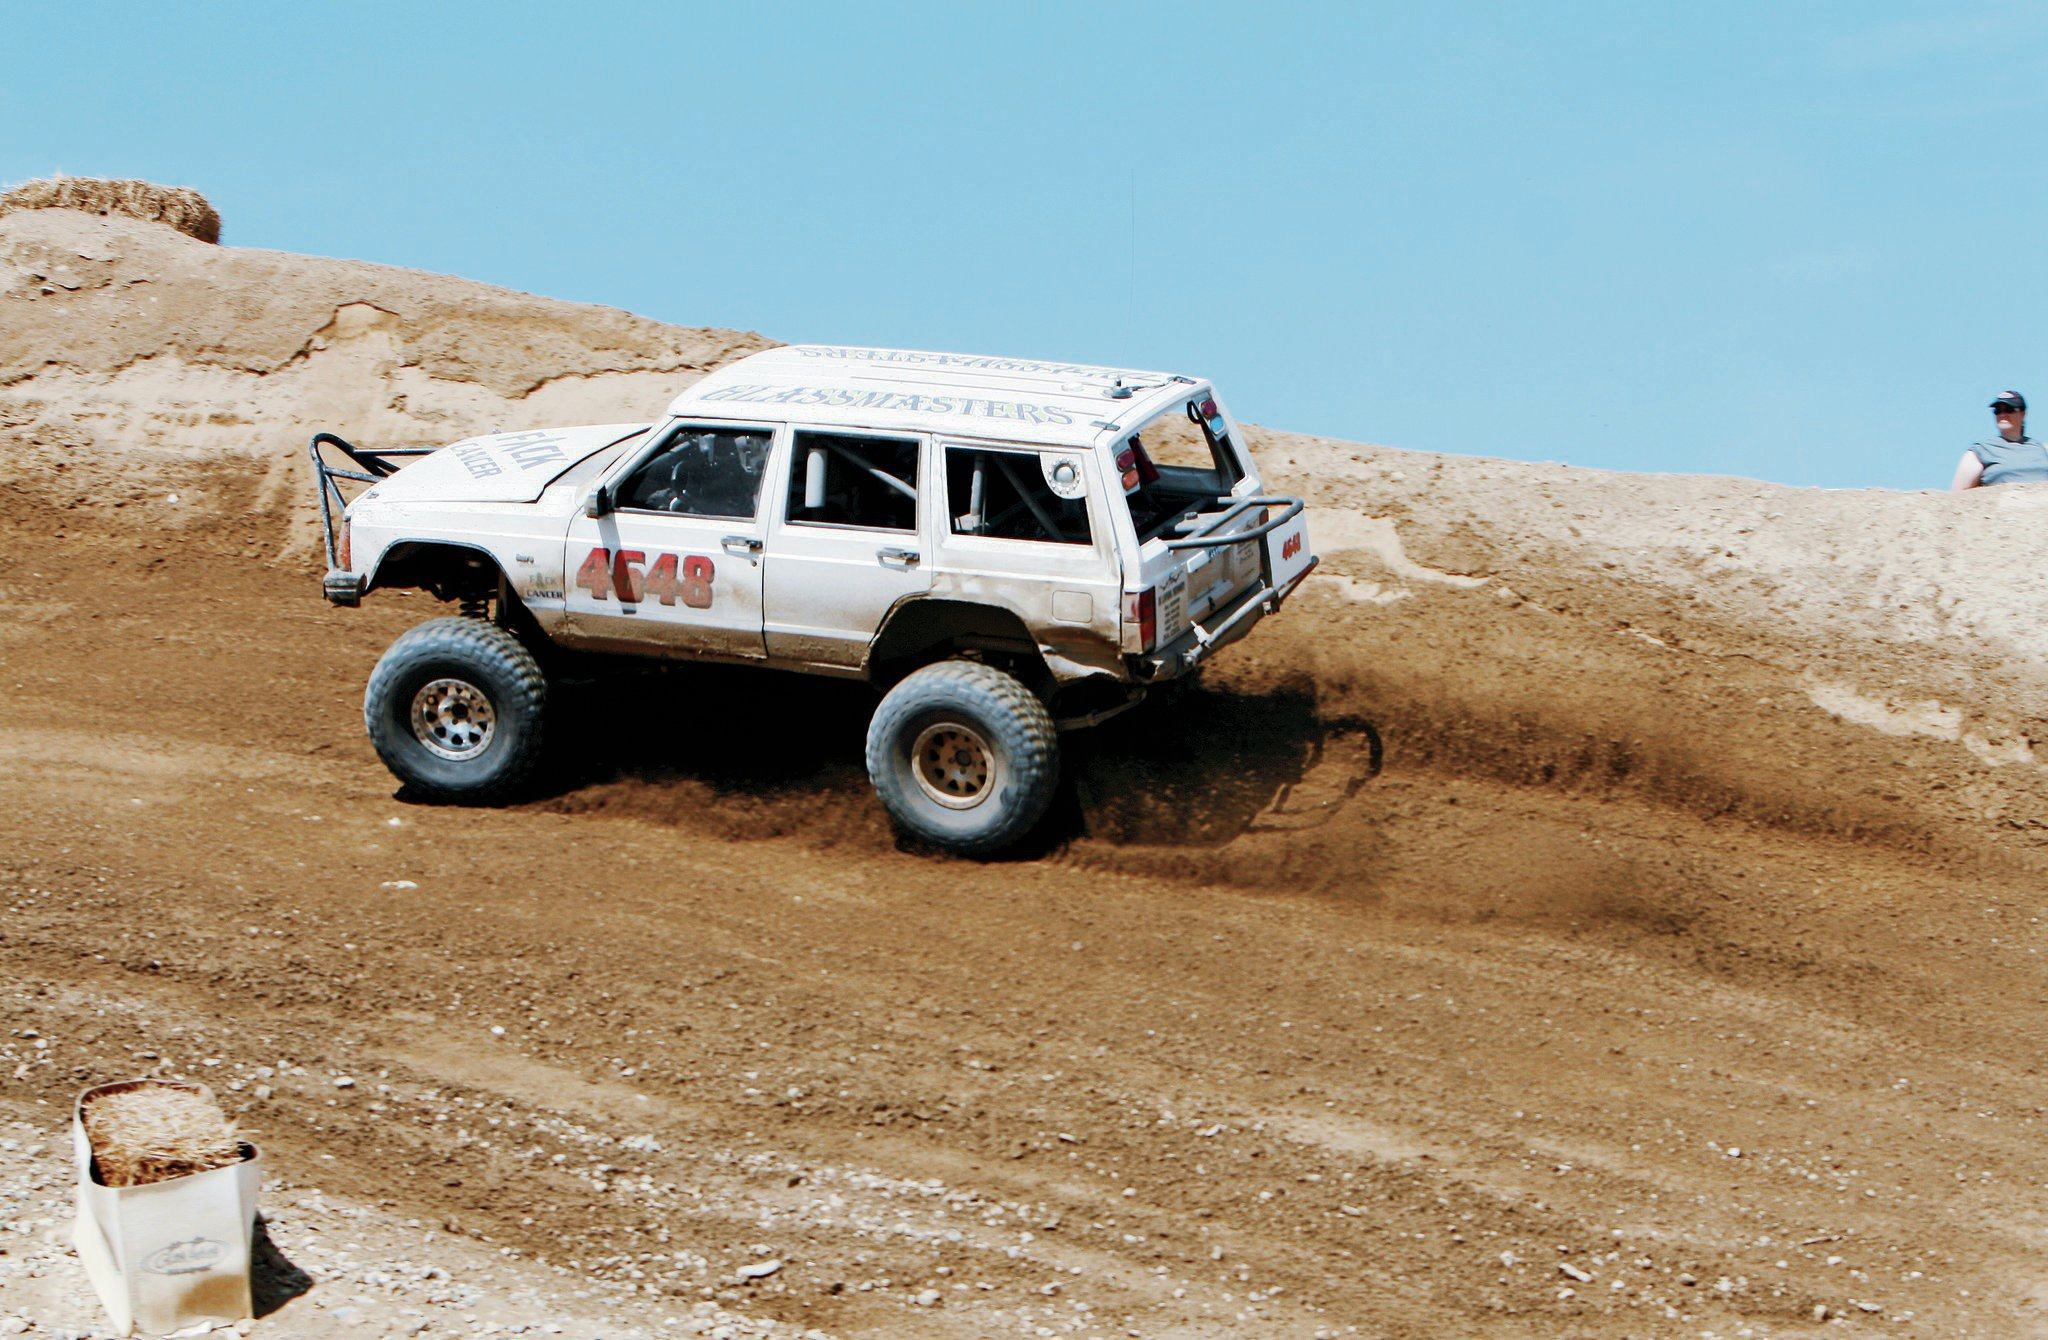 The Behrend Brothers of B and B Racing have fun on a budget. Their $500 XJ is sponsored by Brian Behrend's glass shop and a few friends' businesses. It demonstrates that Ultra4's 4600 Class can be entered somewhat affordably.